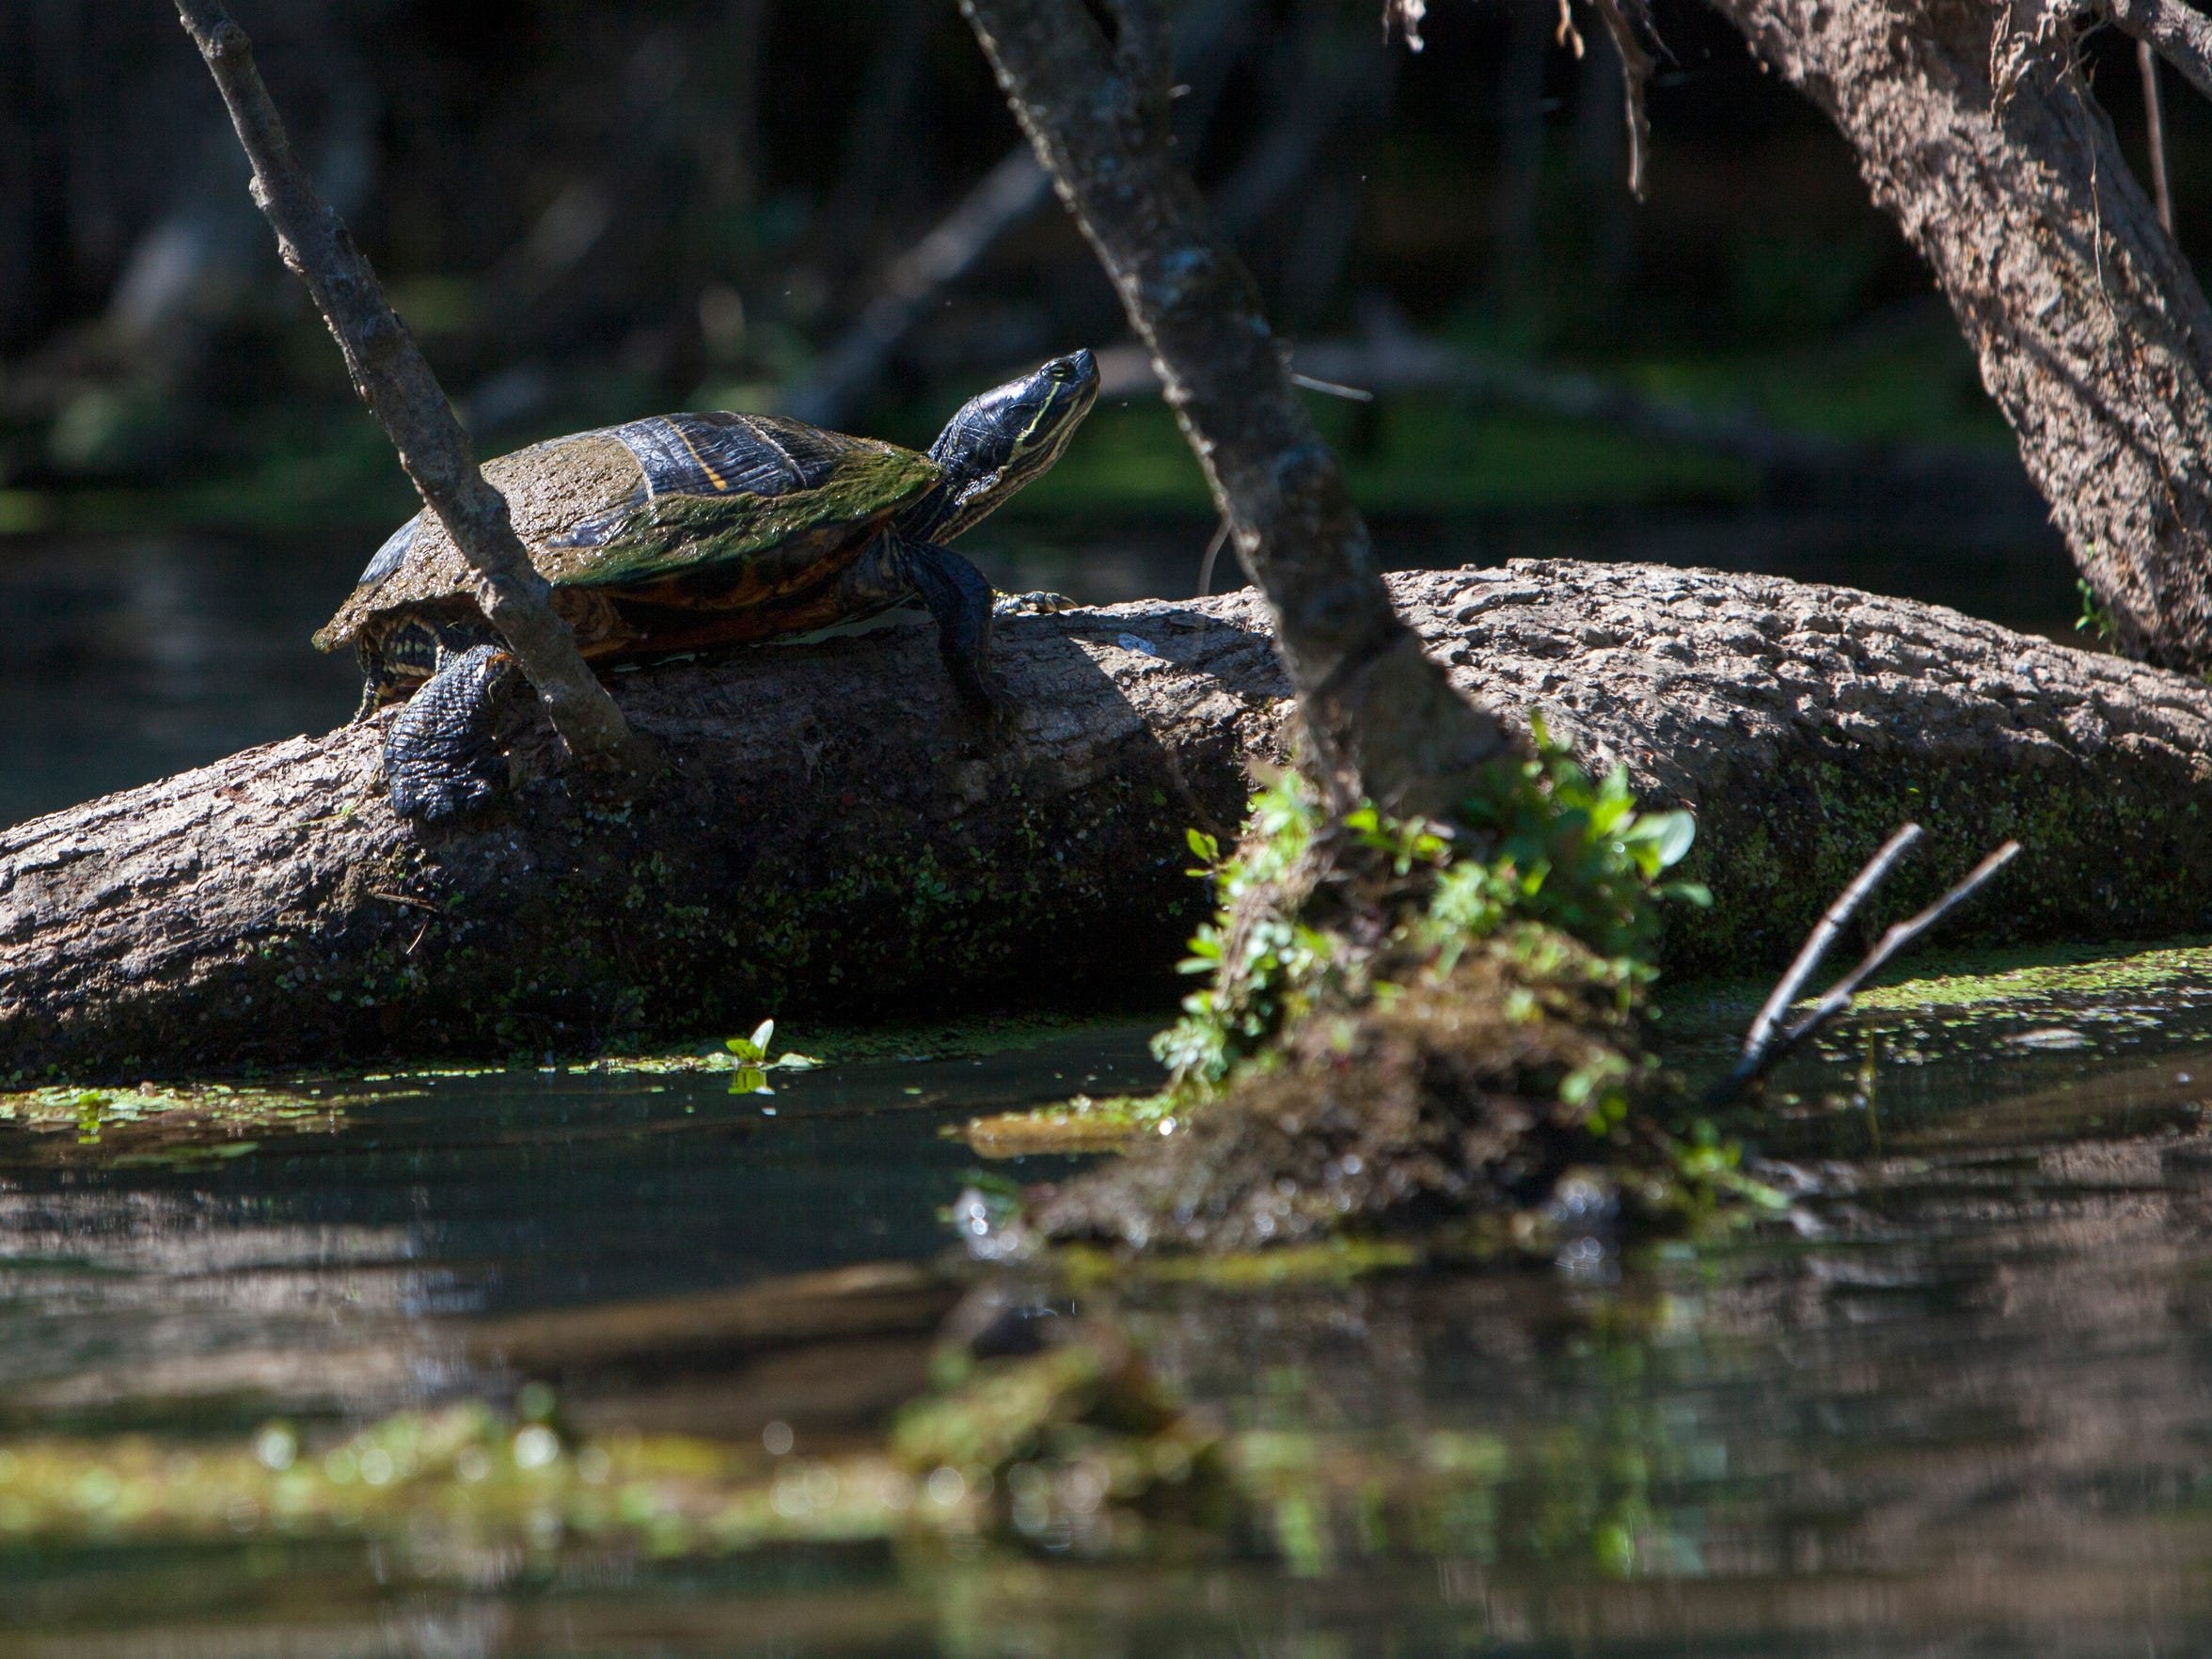 A red-eared slider sunbathes on a log on the Eleven